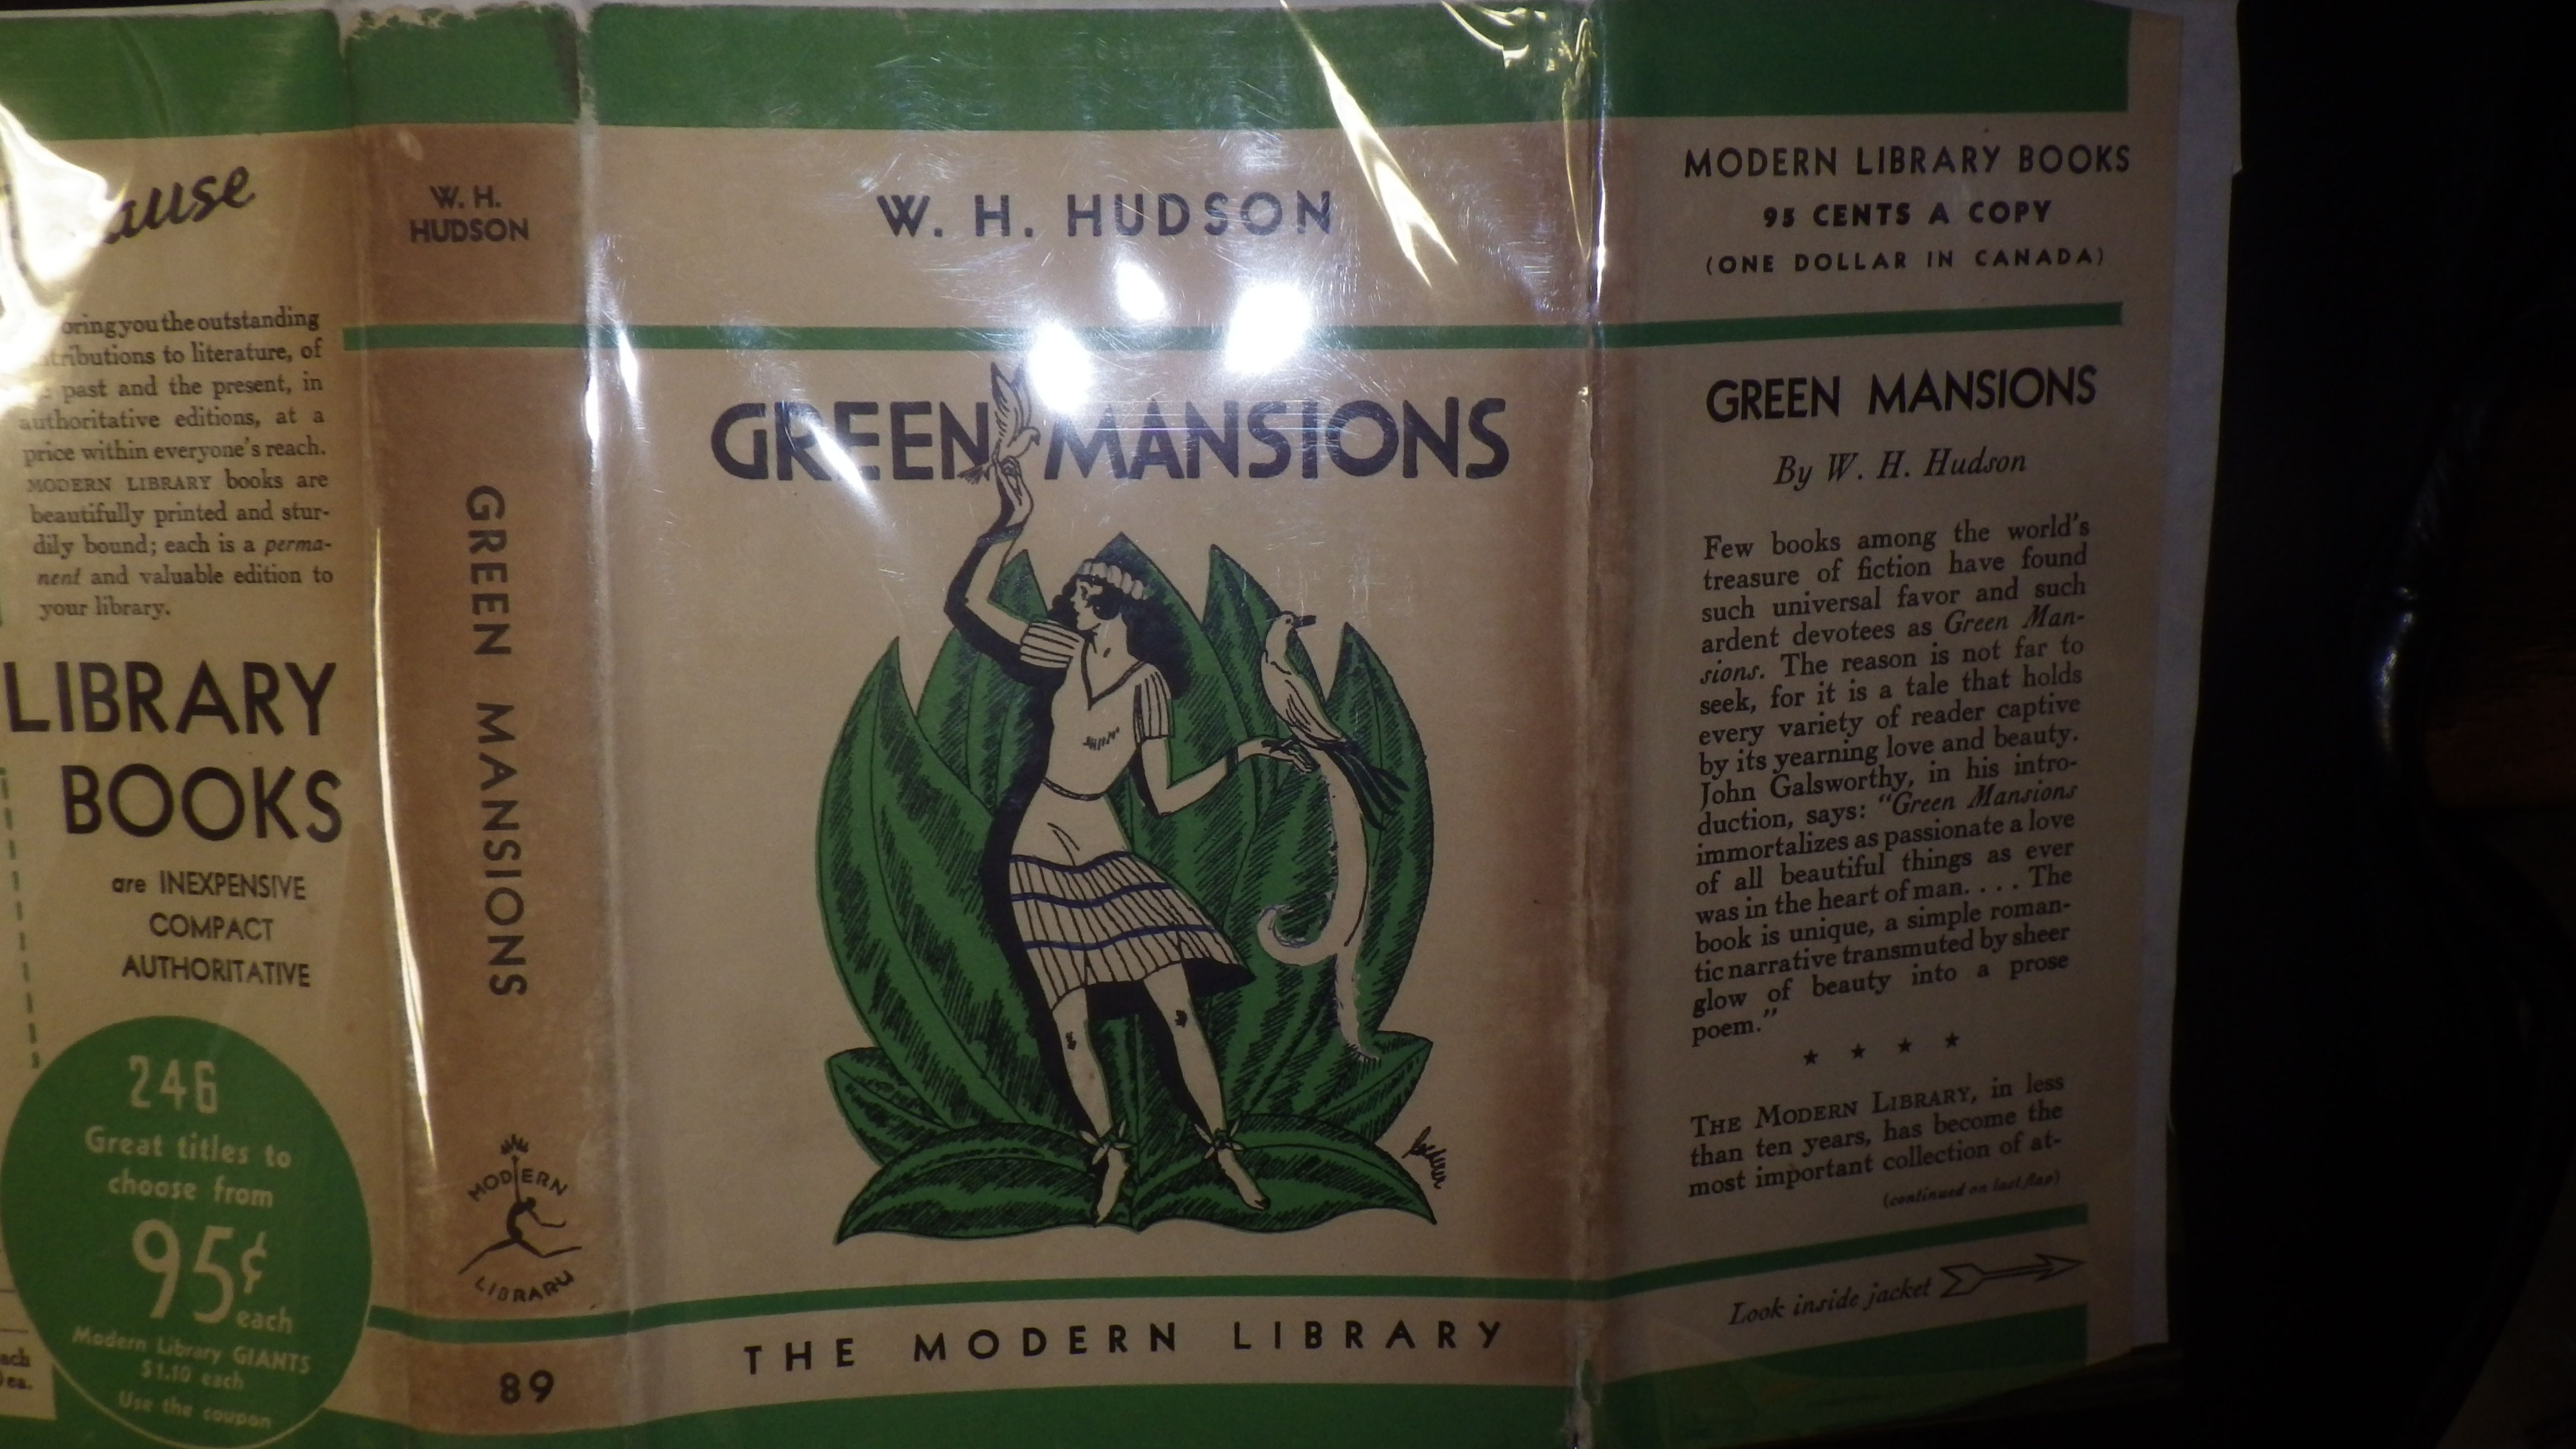 Modern Library Book Covers ~ Green mansions first edition of modern library book no